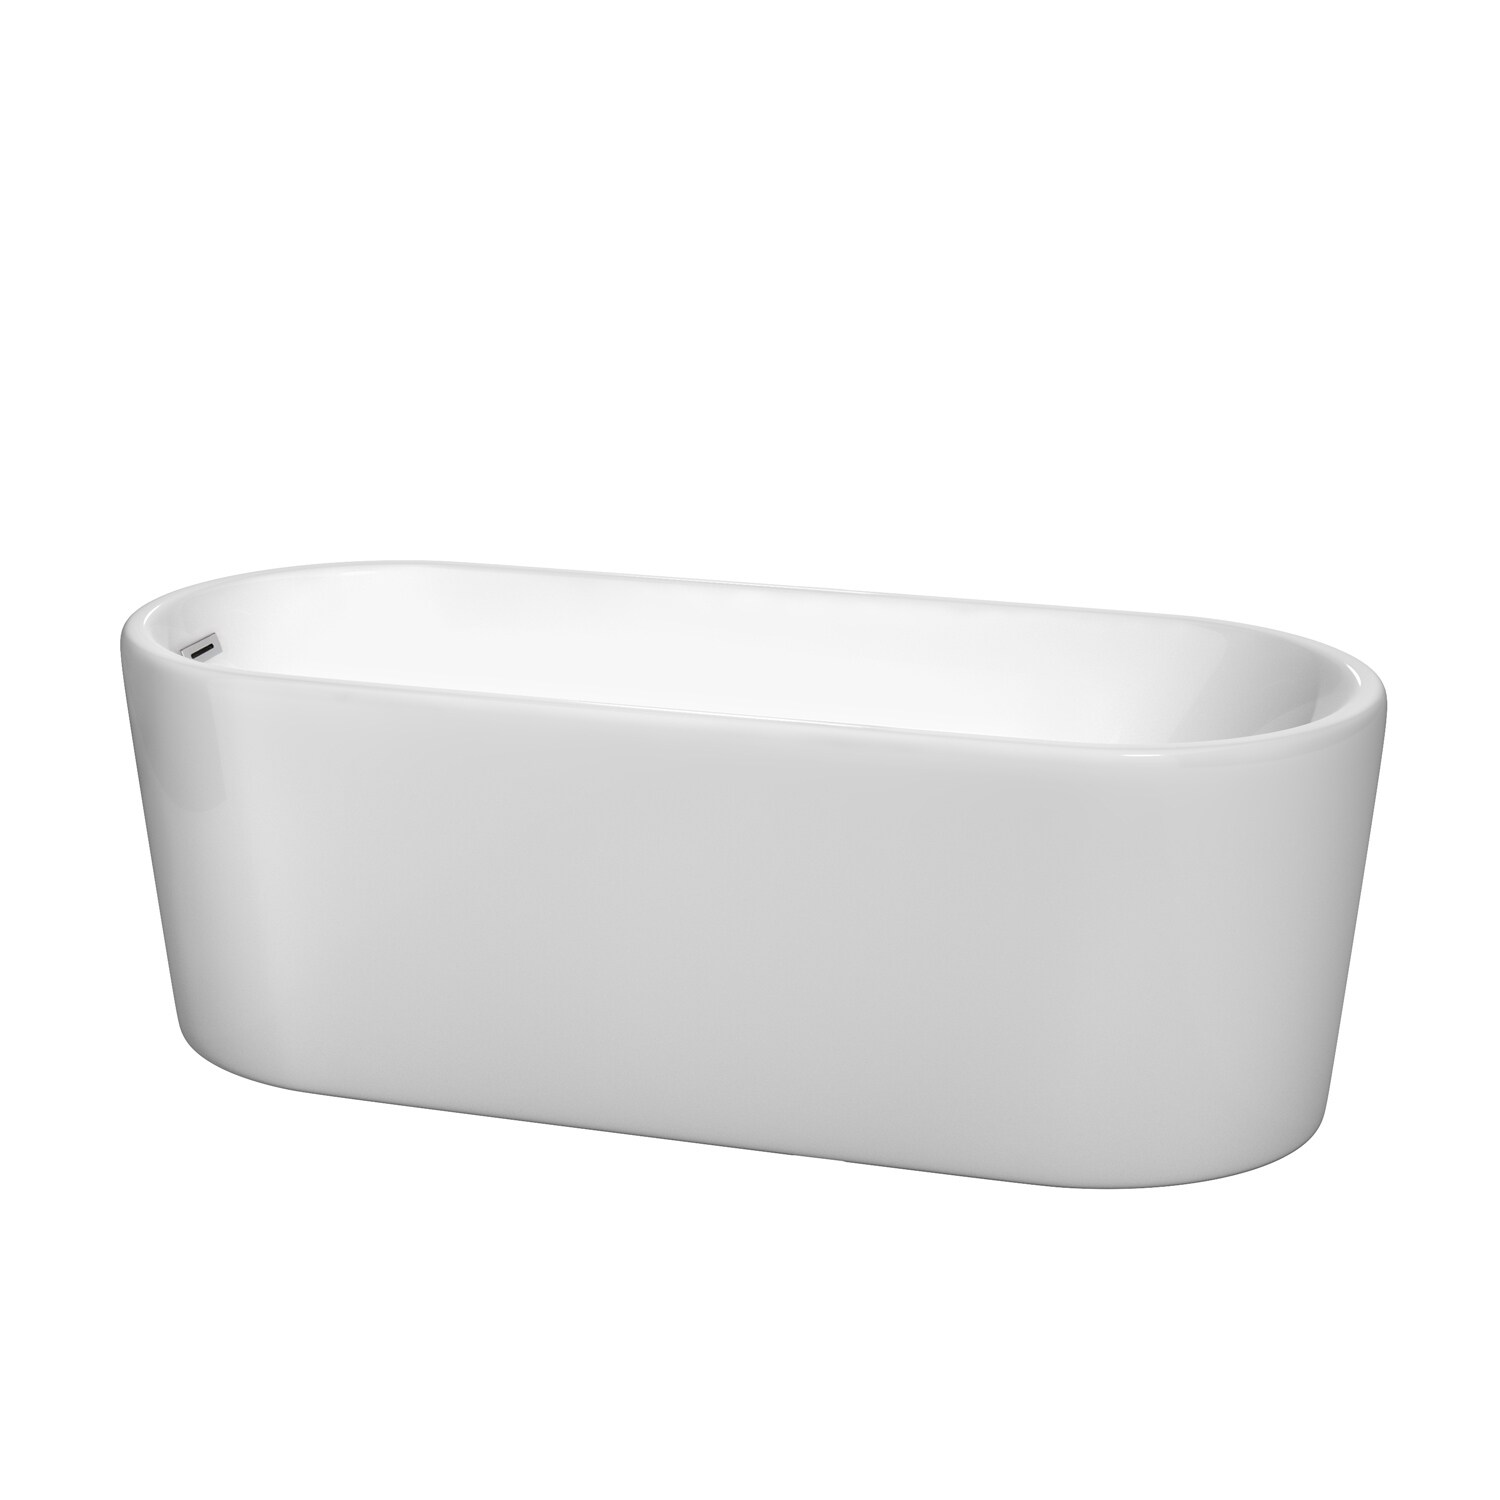 Wyndham Collection Ursula 67-inch White Acrylic Soaking B...